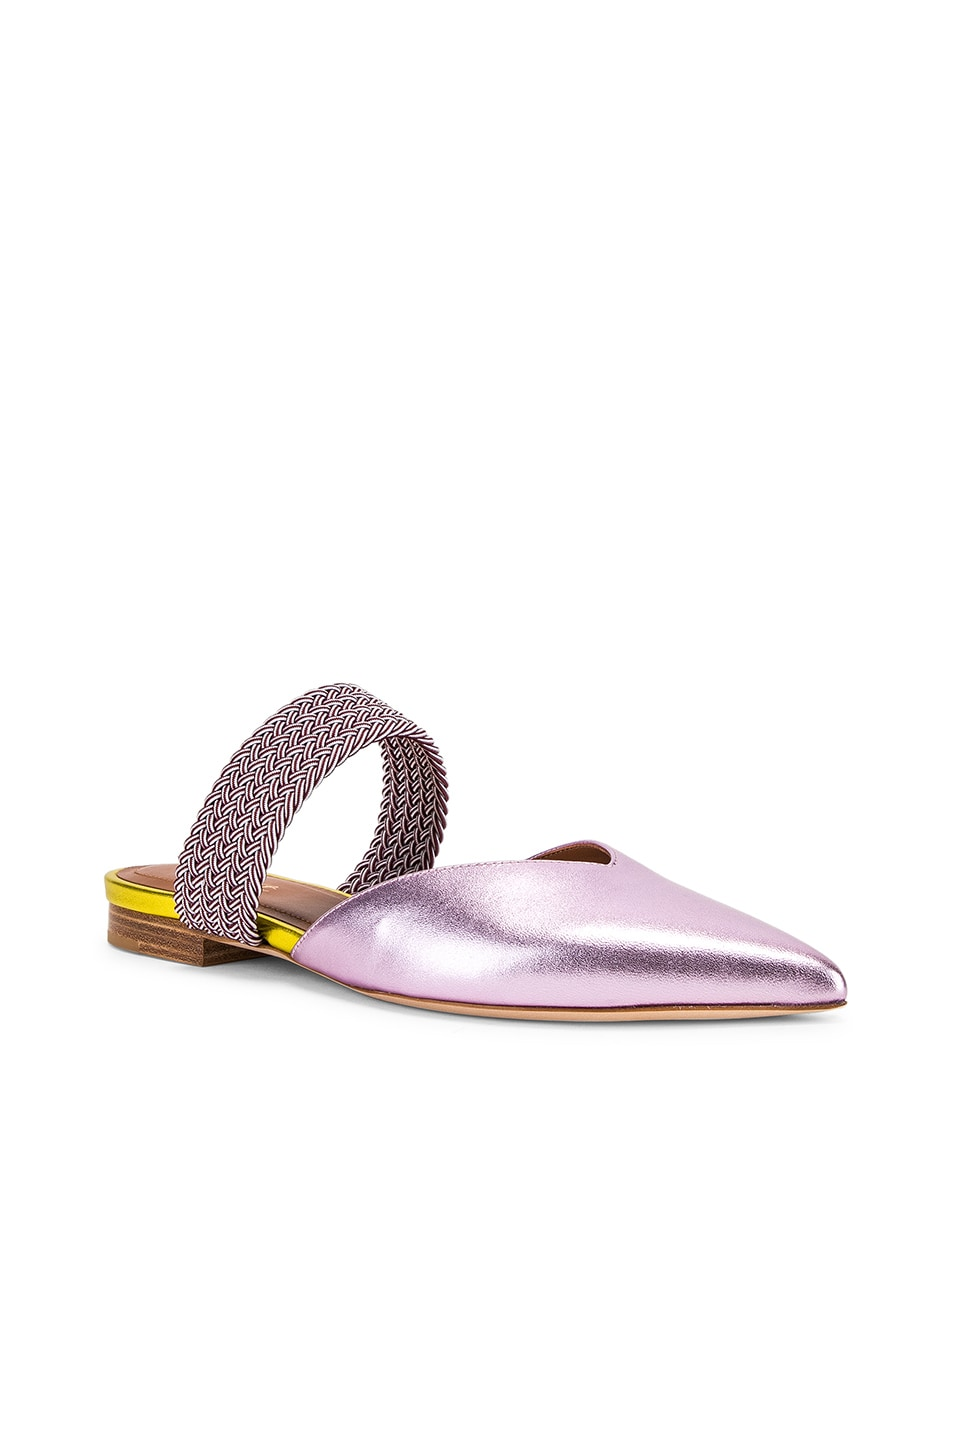 Image 2 of Malone Souliers Maisie Flat in Pink & Burgundy